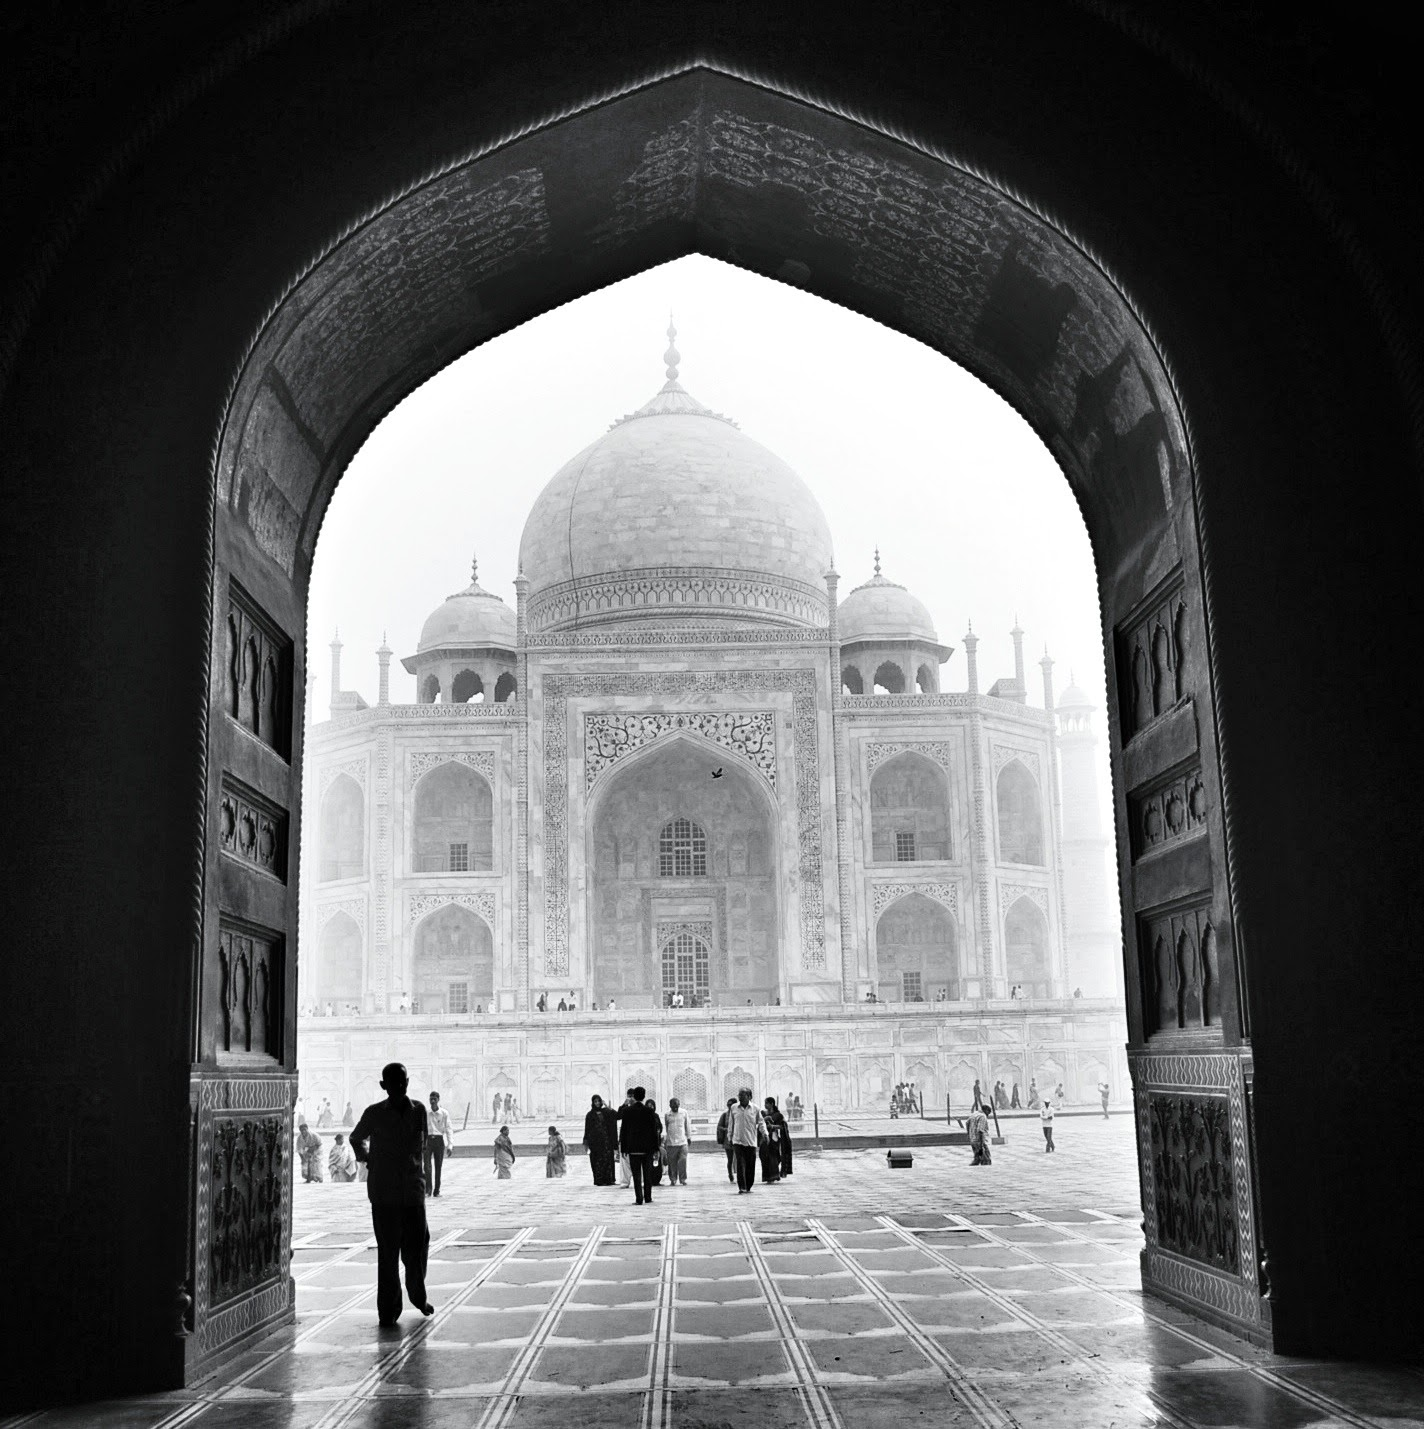 snapseed editing tips black and white photography india taj mahal